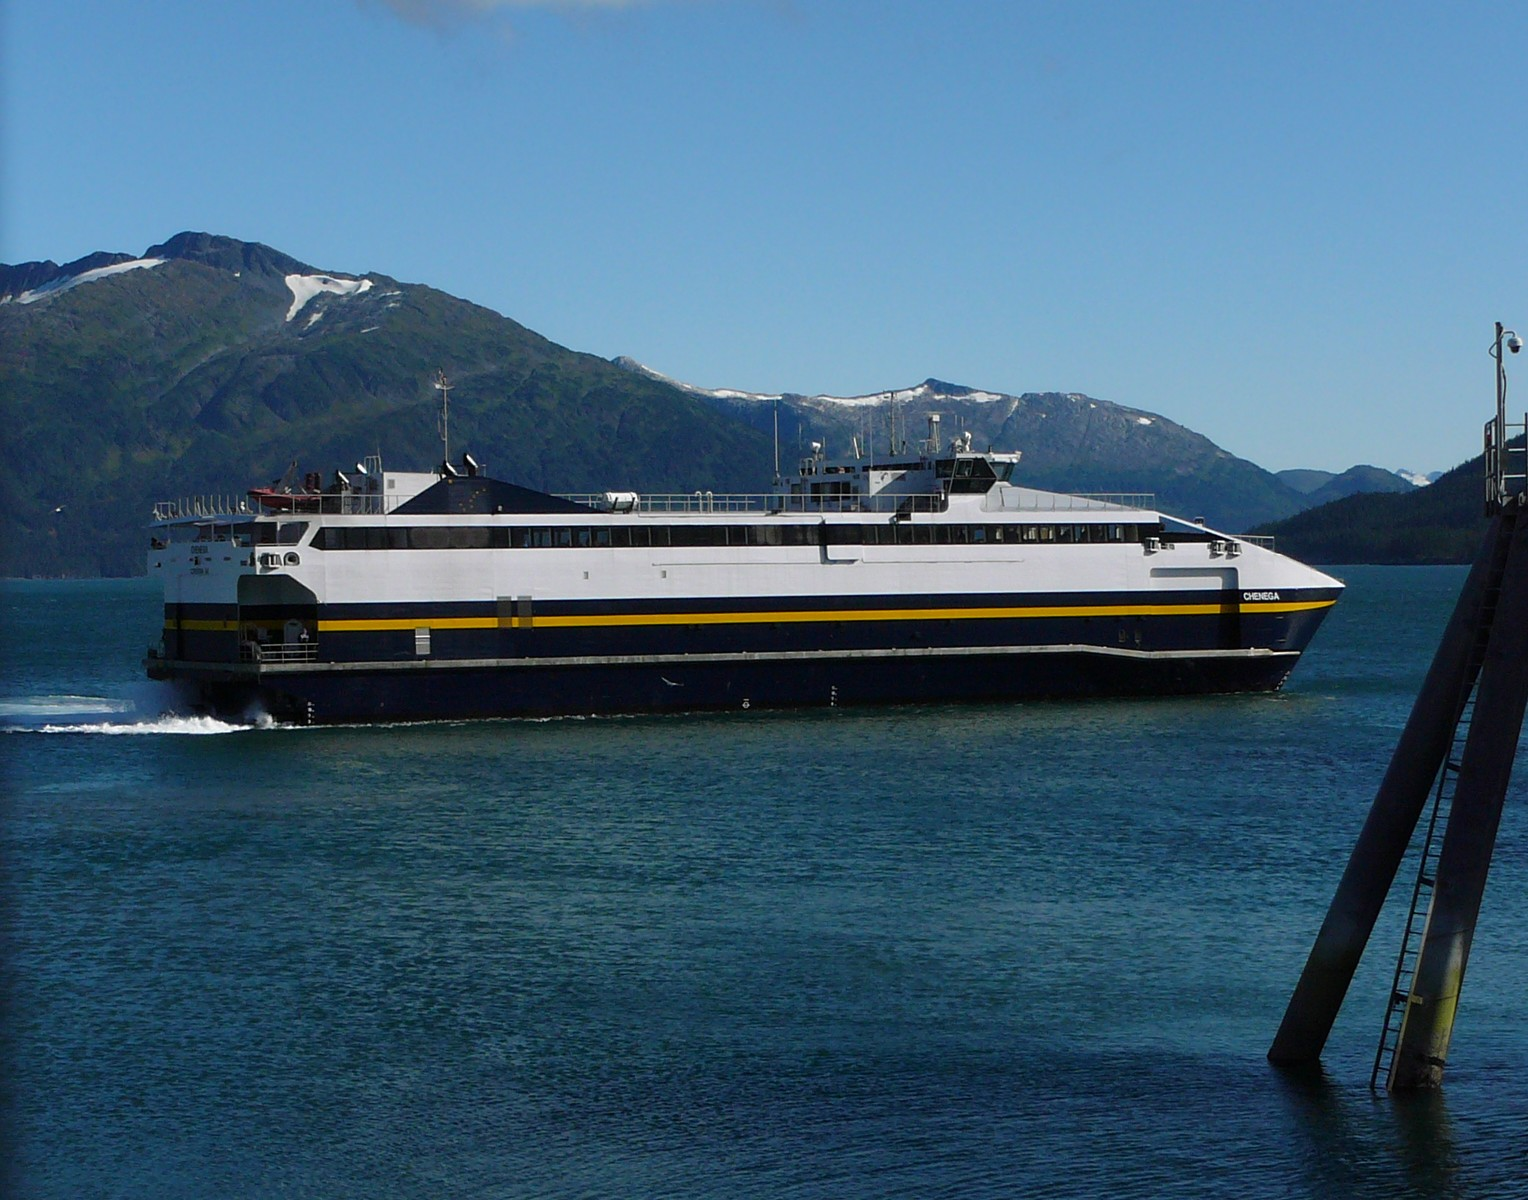 The fast ferry Chenega pulling into Whittier. Photo by Ed Schoenfeld.